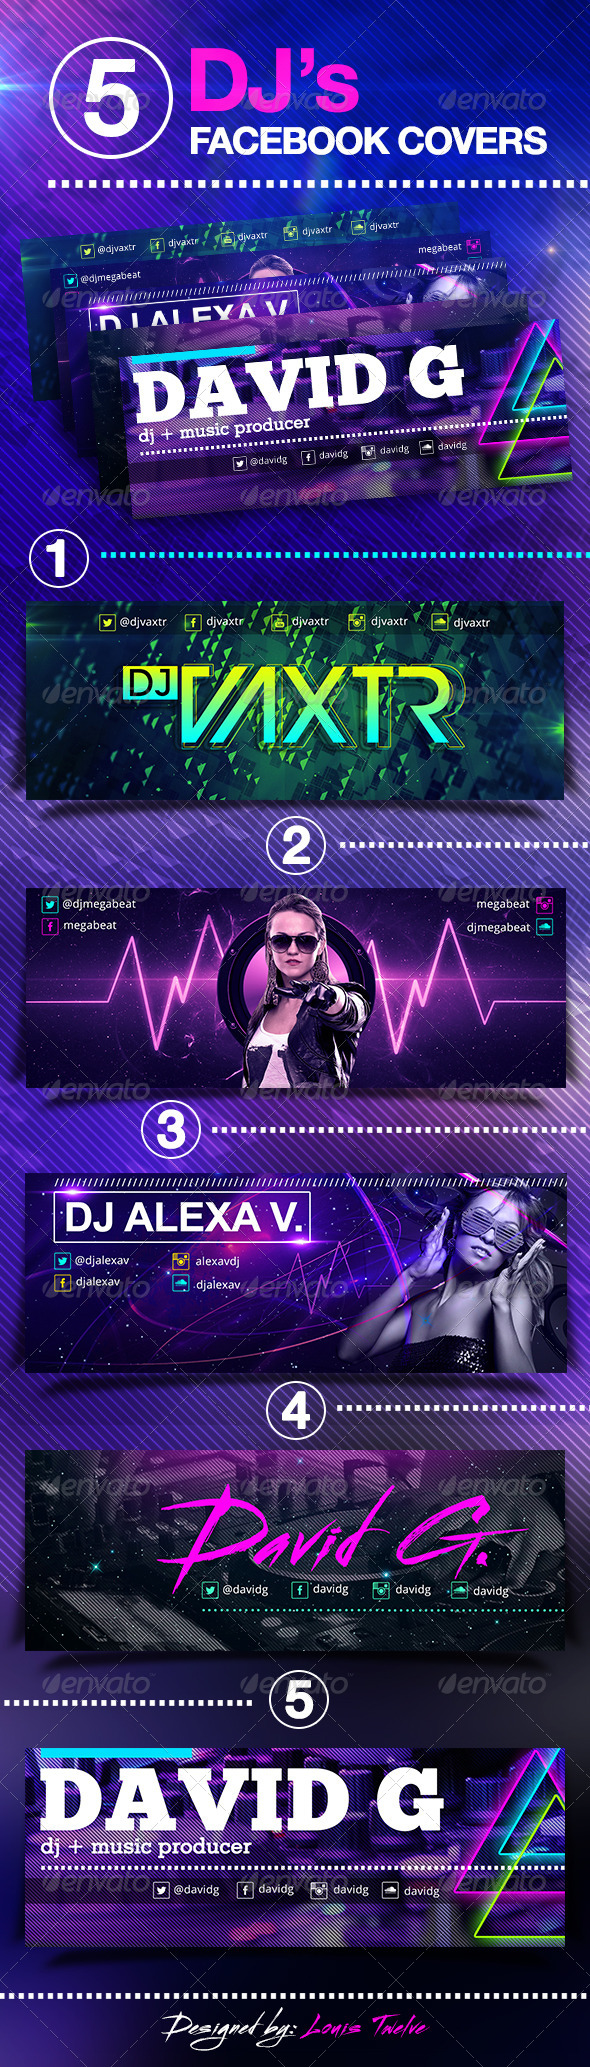 5 Dj's Facebook Covers  - Facebook Timeline Covers Social Media